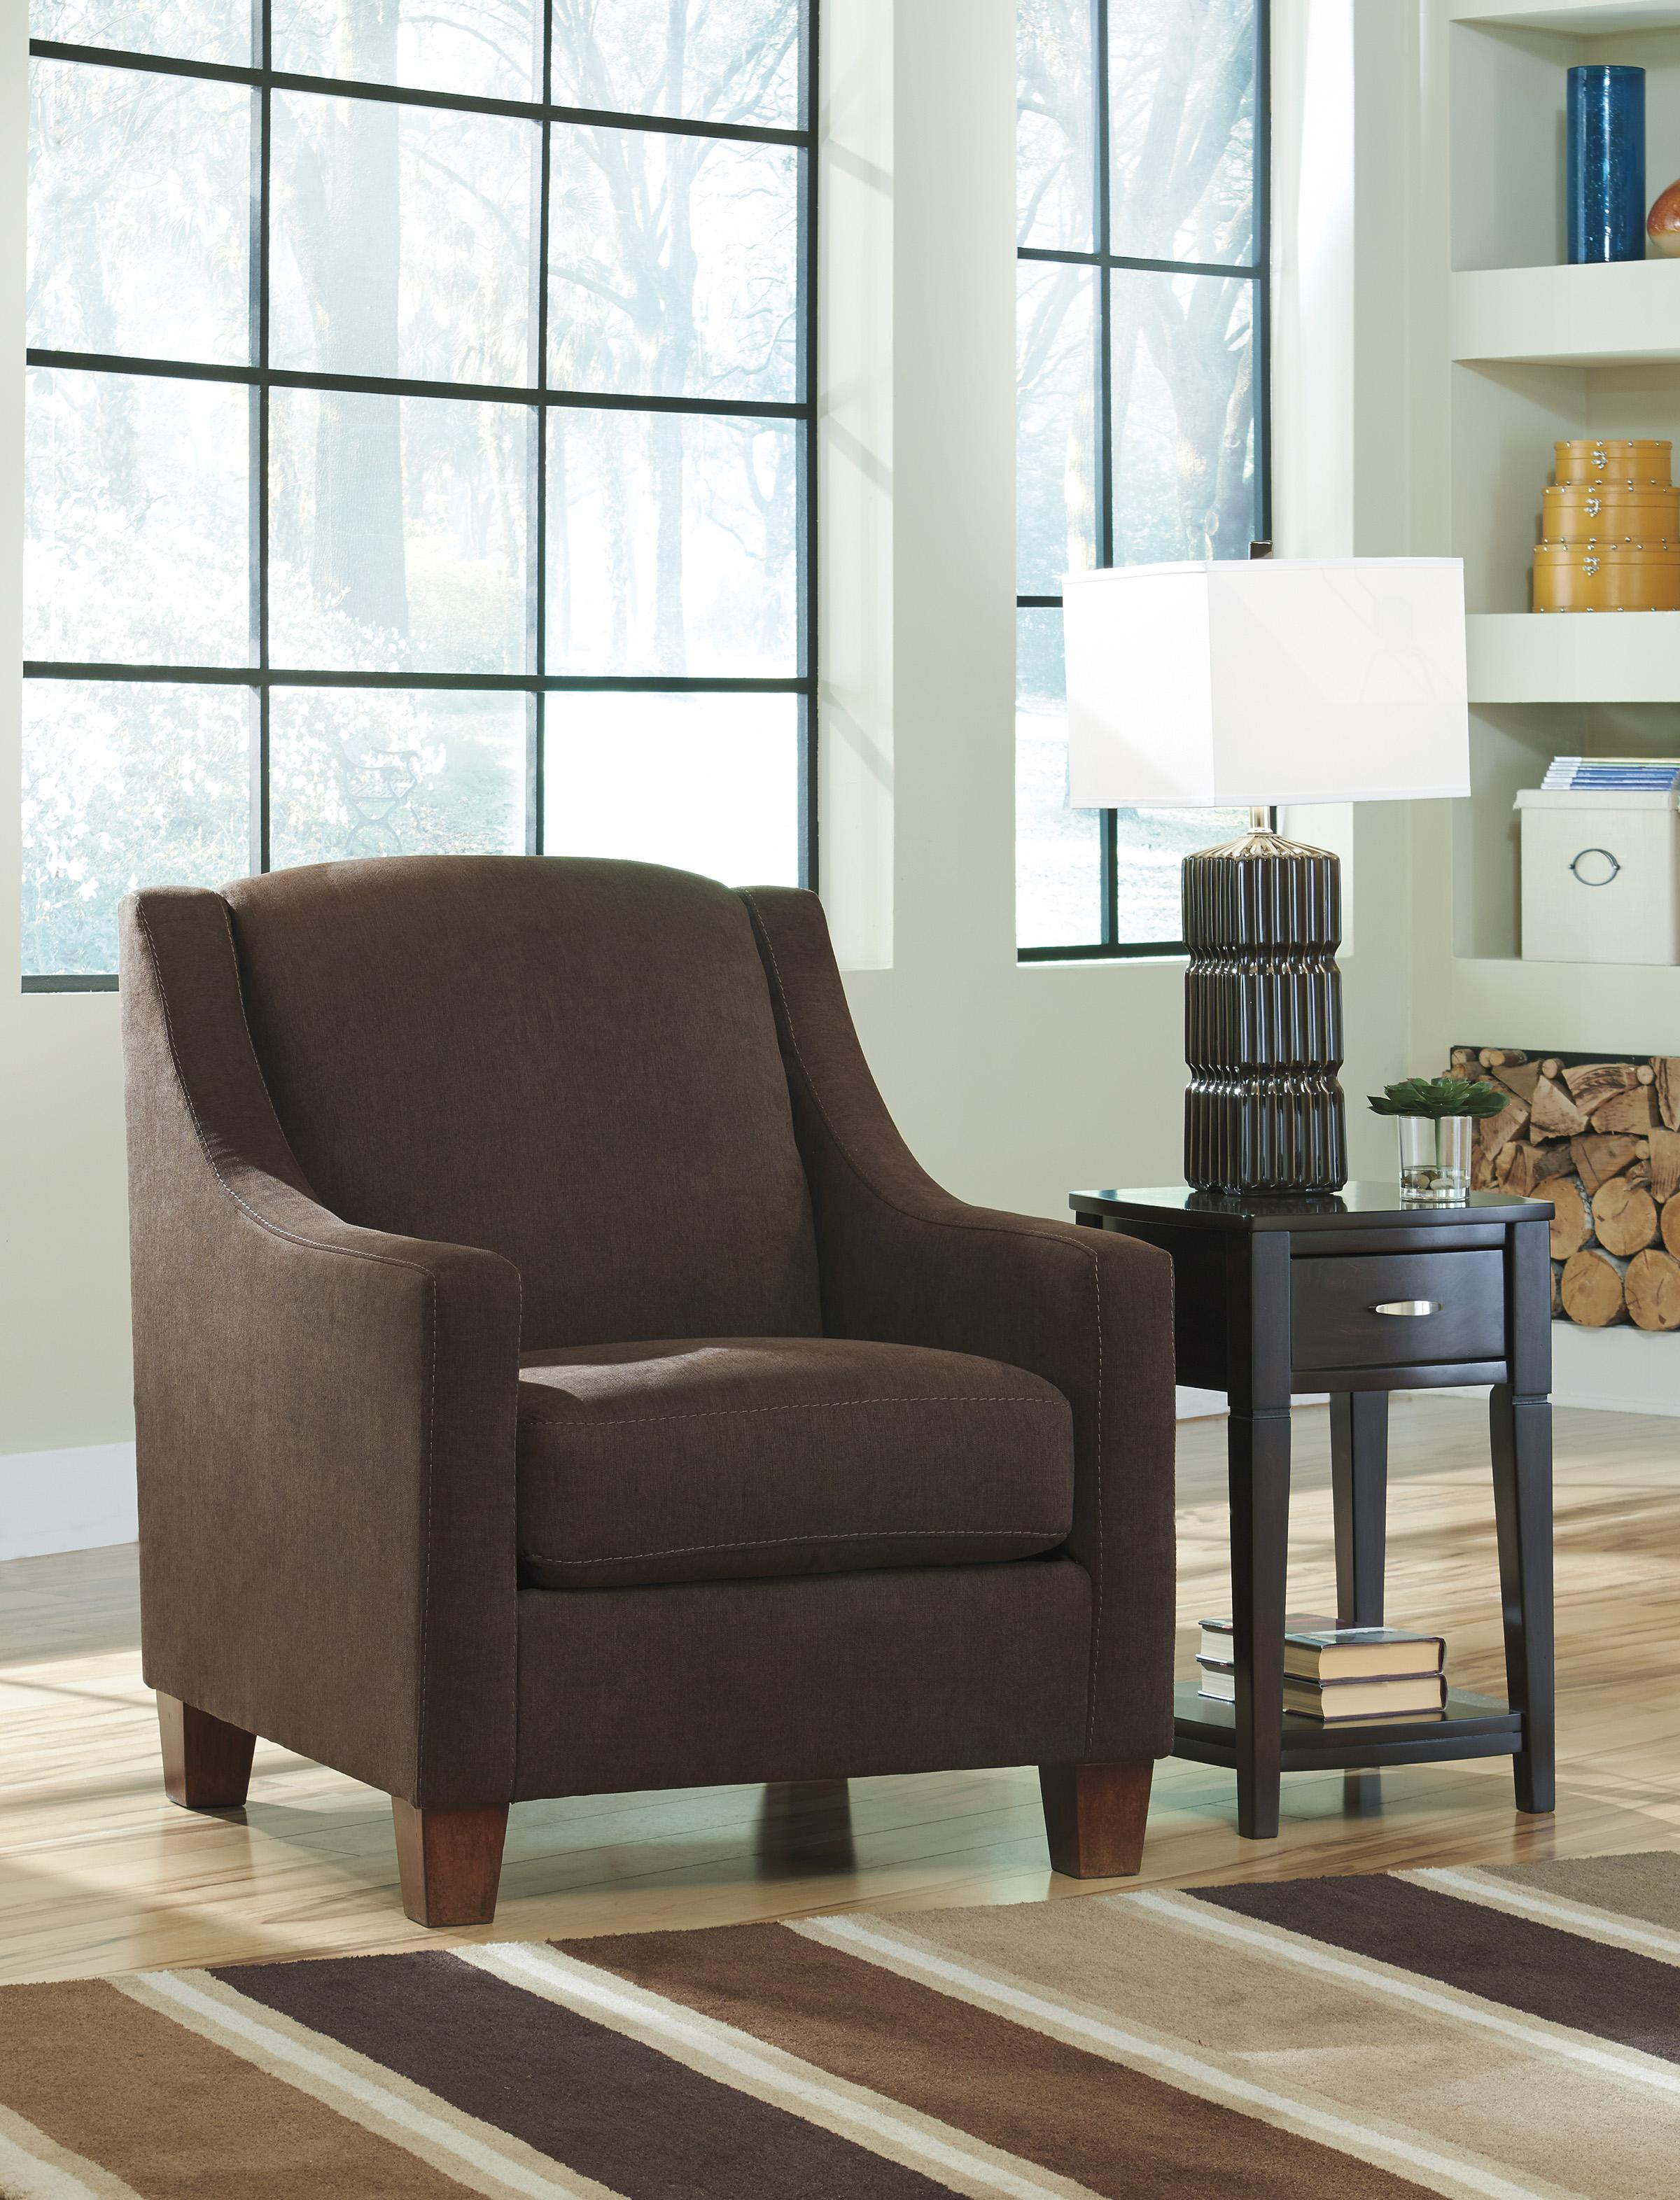 Benchcraft Maier Walnut 4520121 Contemporary Accent Chair With Sloping Track Arms John V